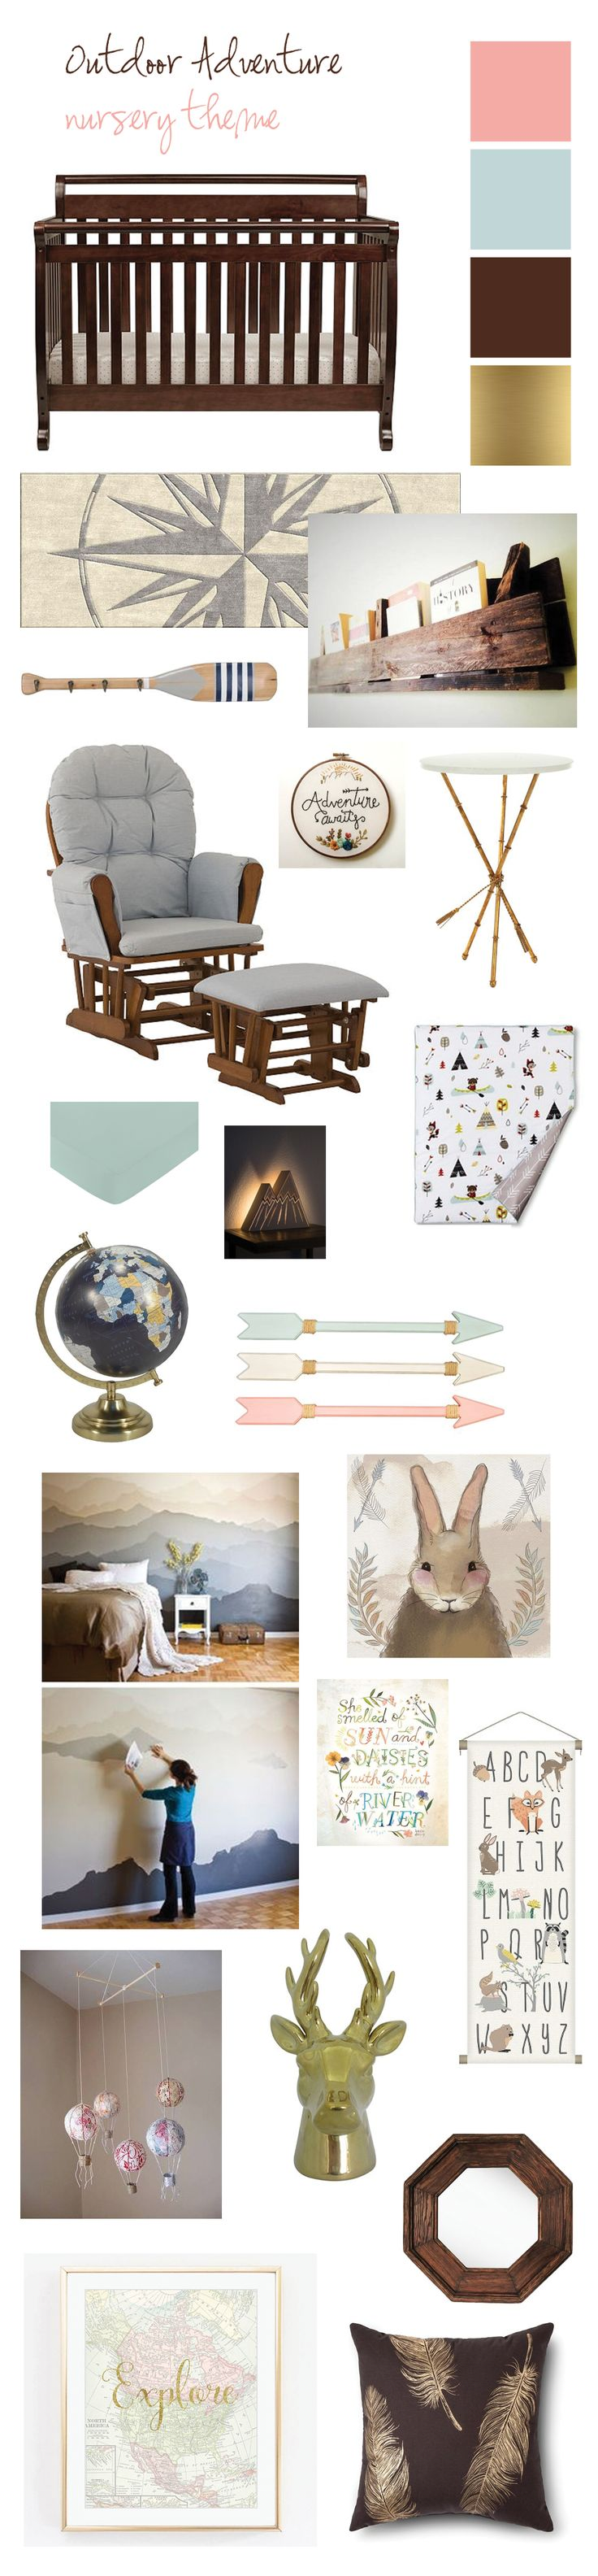 Baby girl nursery idea outdoor adventure nursery theme... mountains, woodland creatures, boating, canoeing, camping, feathers, blue, gold and ping.